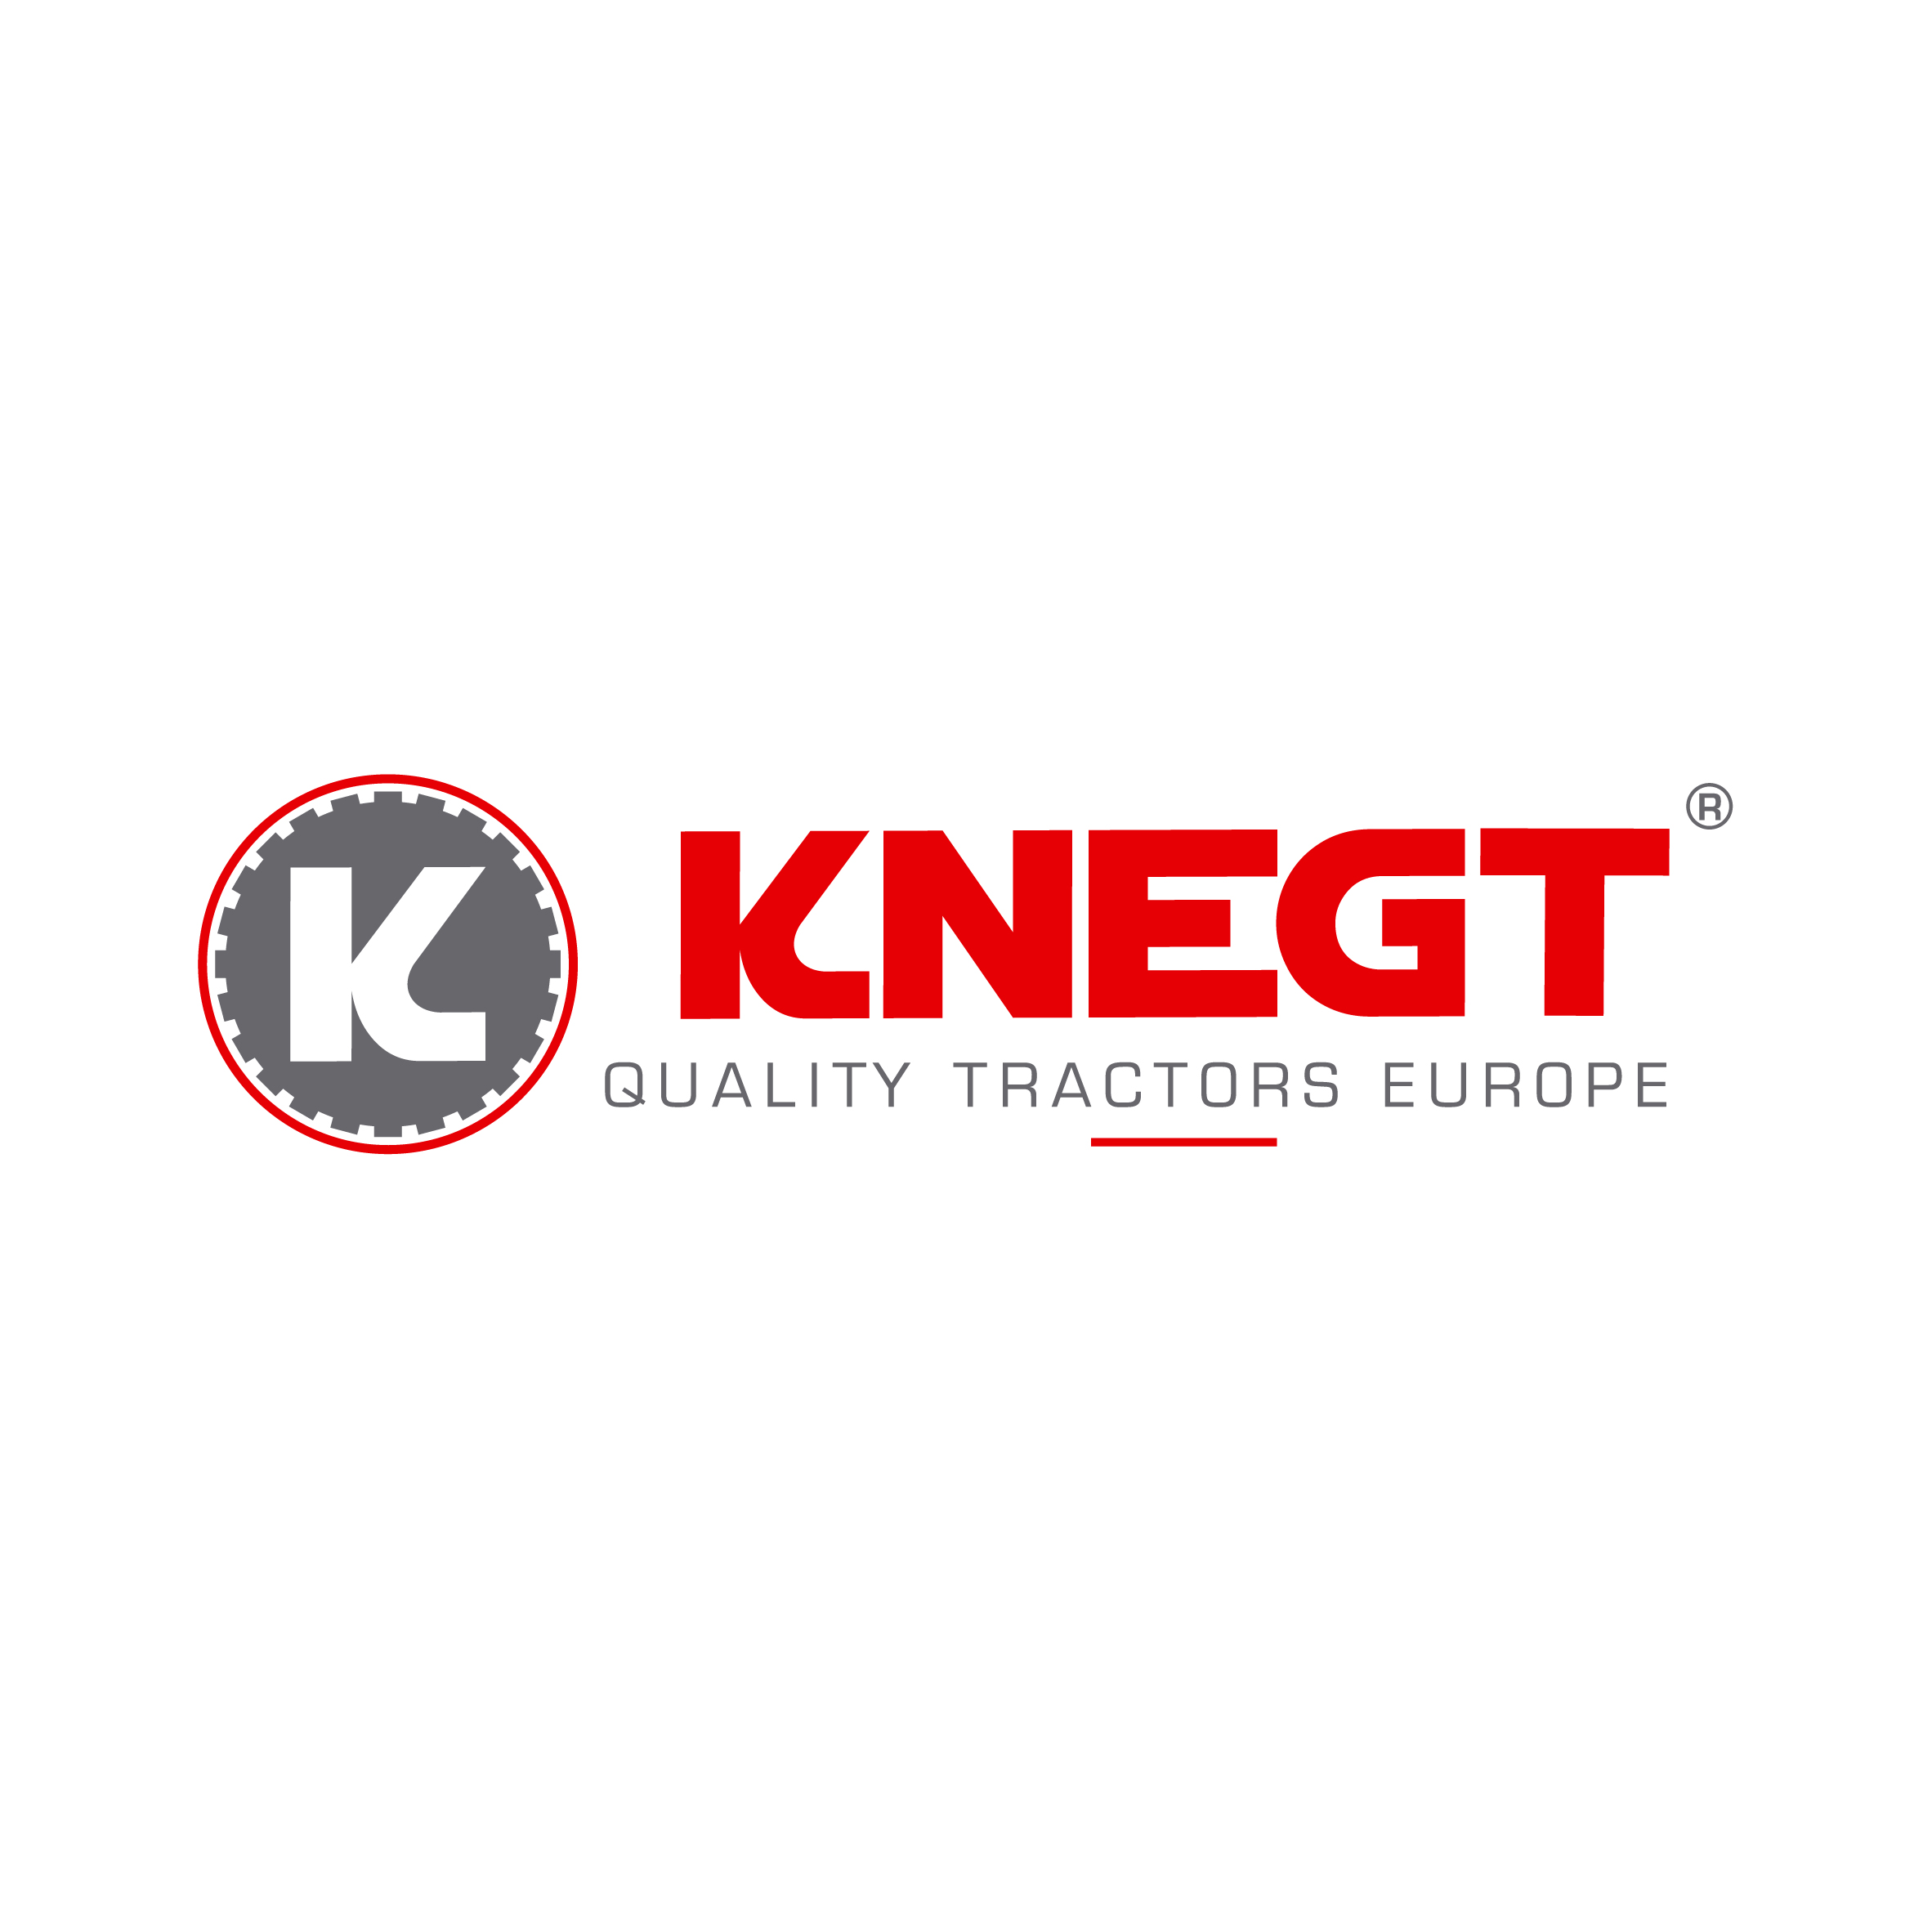 Knegt Quality Tractors